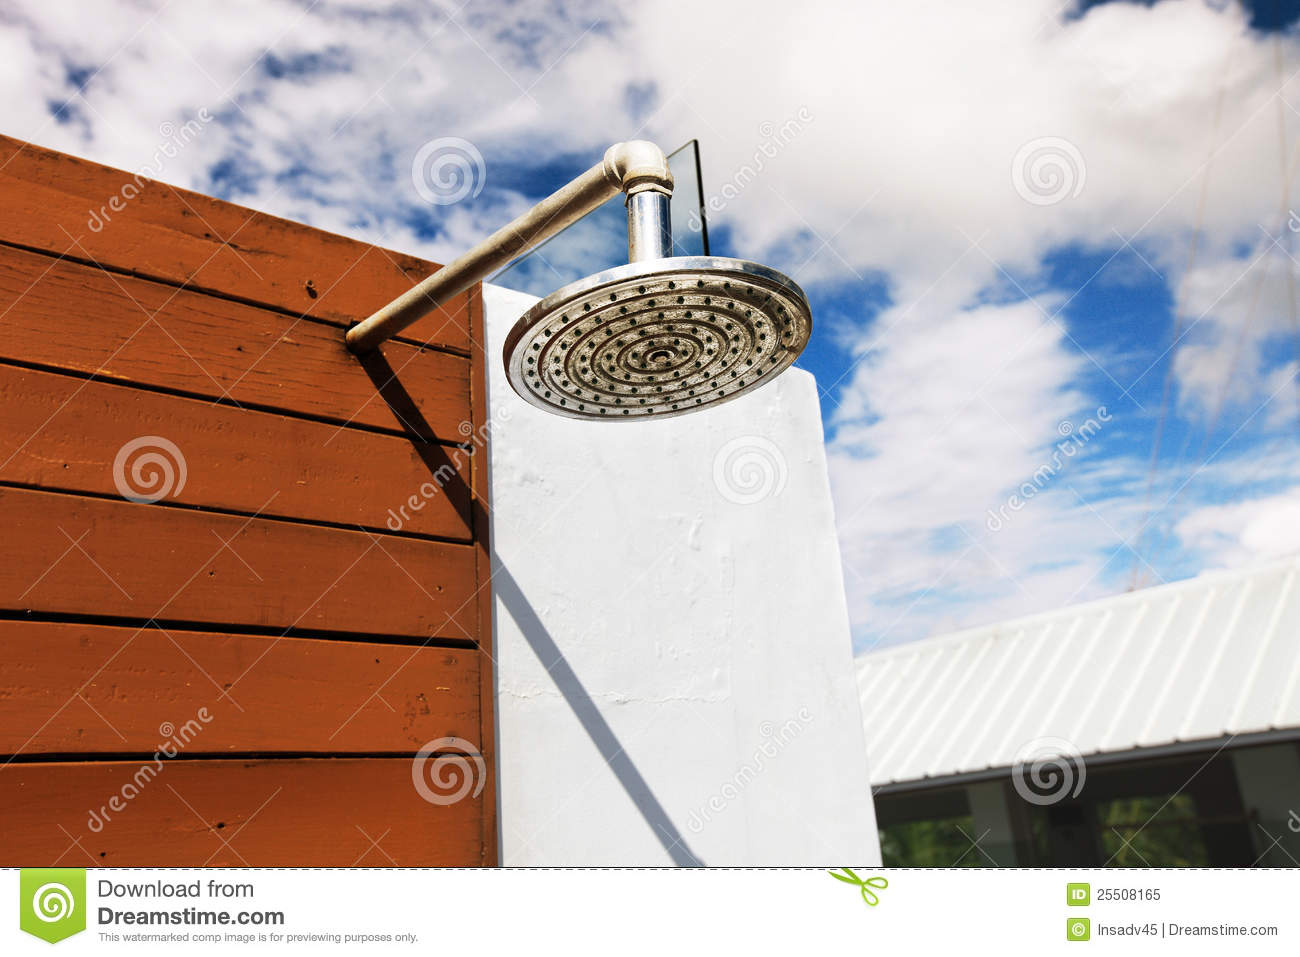 Outdoor Shower At Swimming Pool Stock Image  Image 25508165